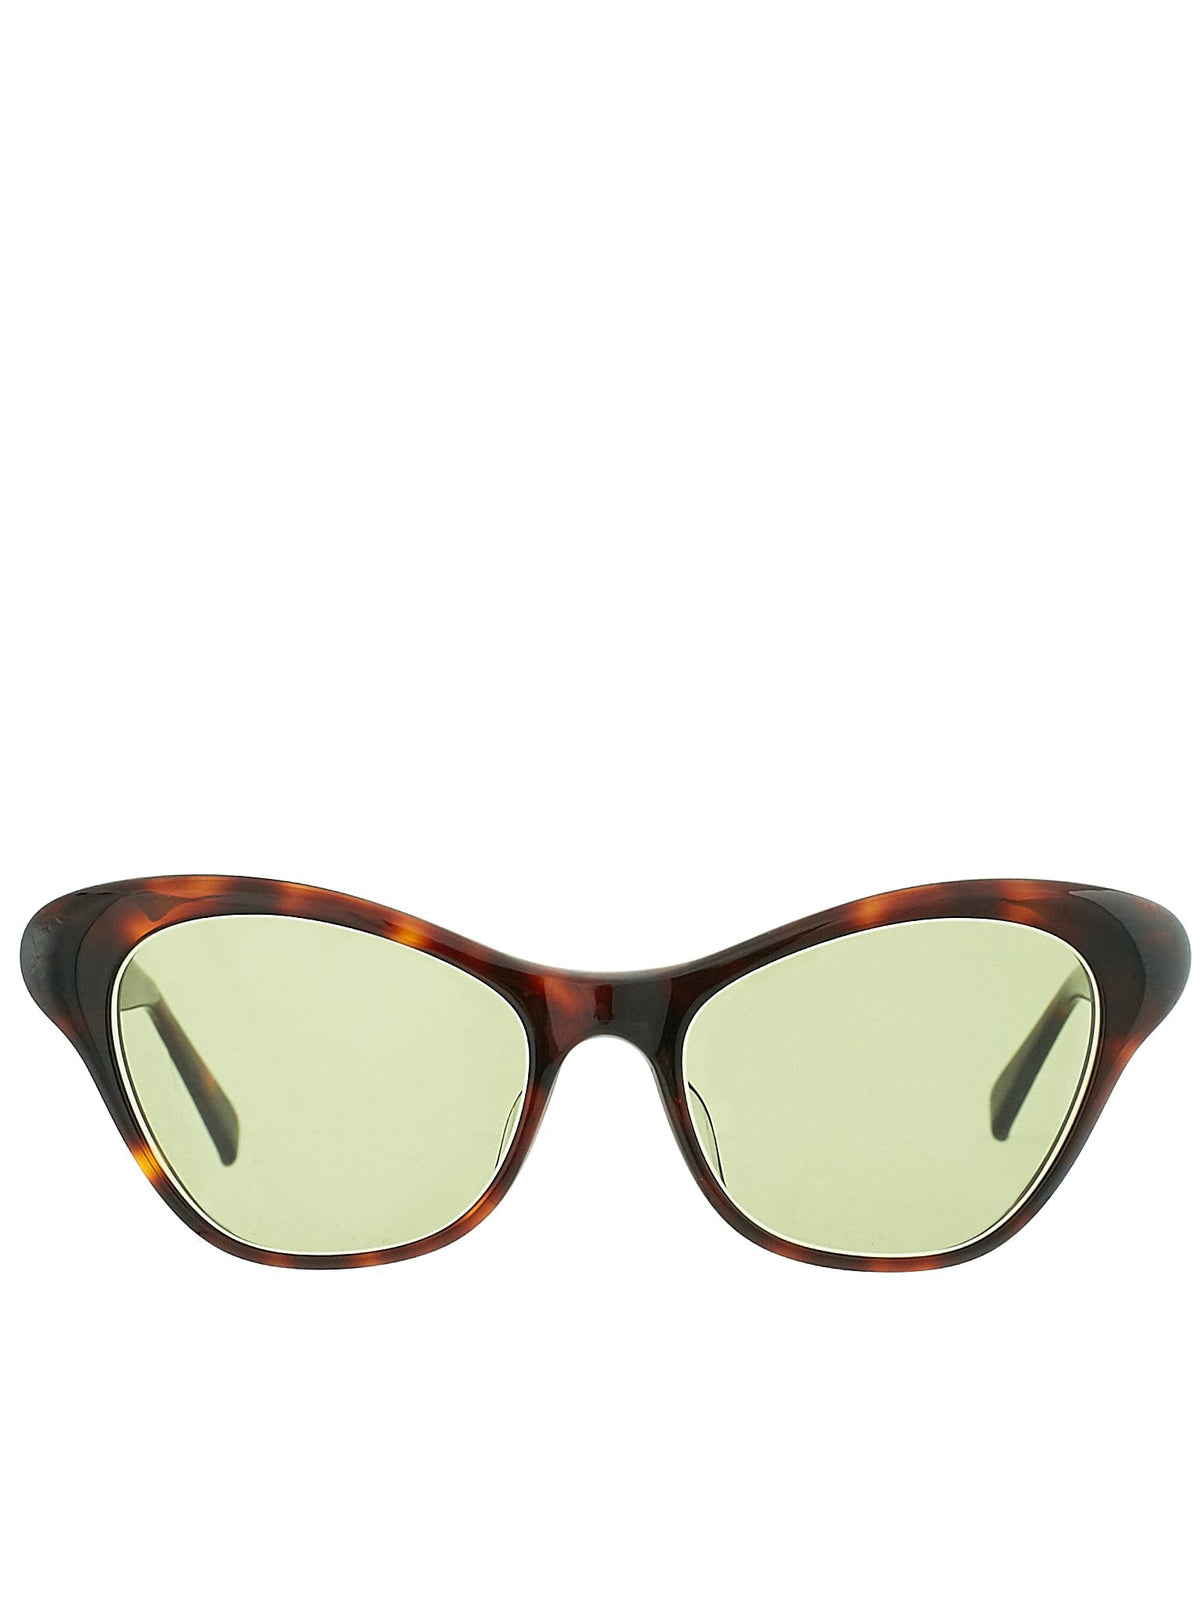 'Britt Sunglasses' (BRITT-BROWN-TORTSHL-GREEN3)